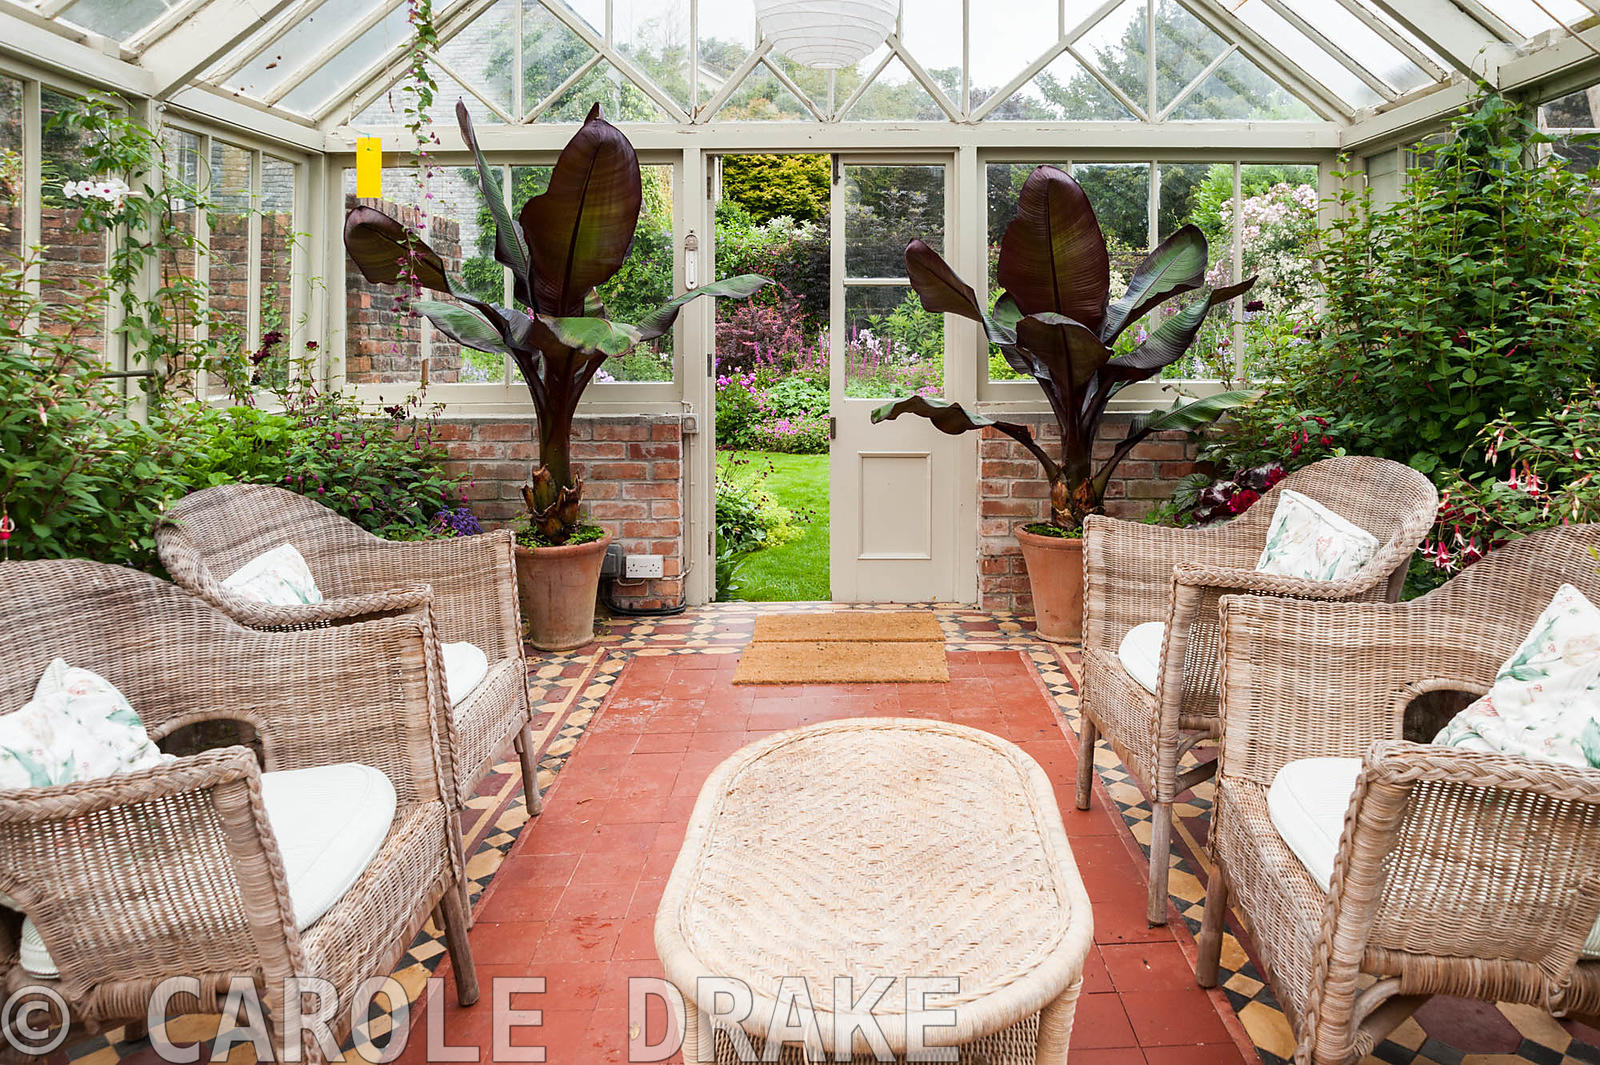 Victorian conservatory with wicker furniture surrounded by lush plants including pelargoniums, begonias, fuchsias and bananas...